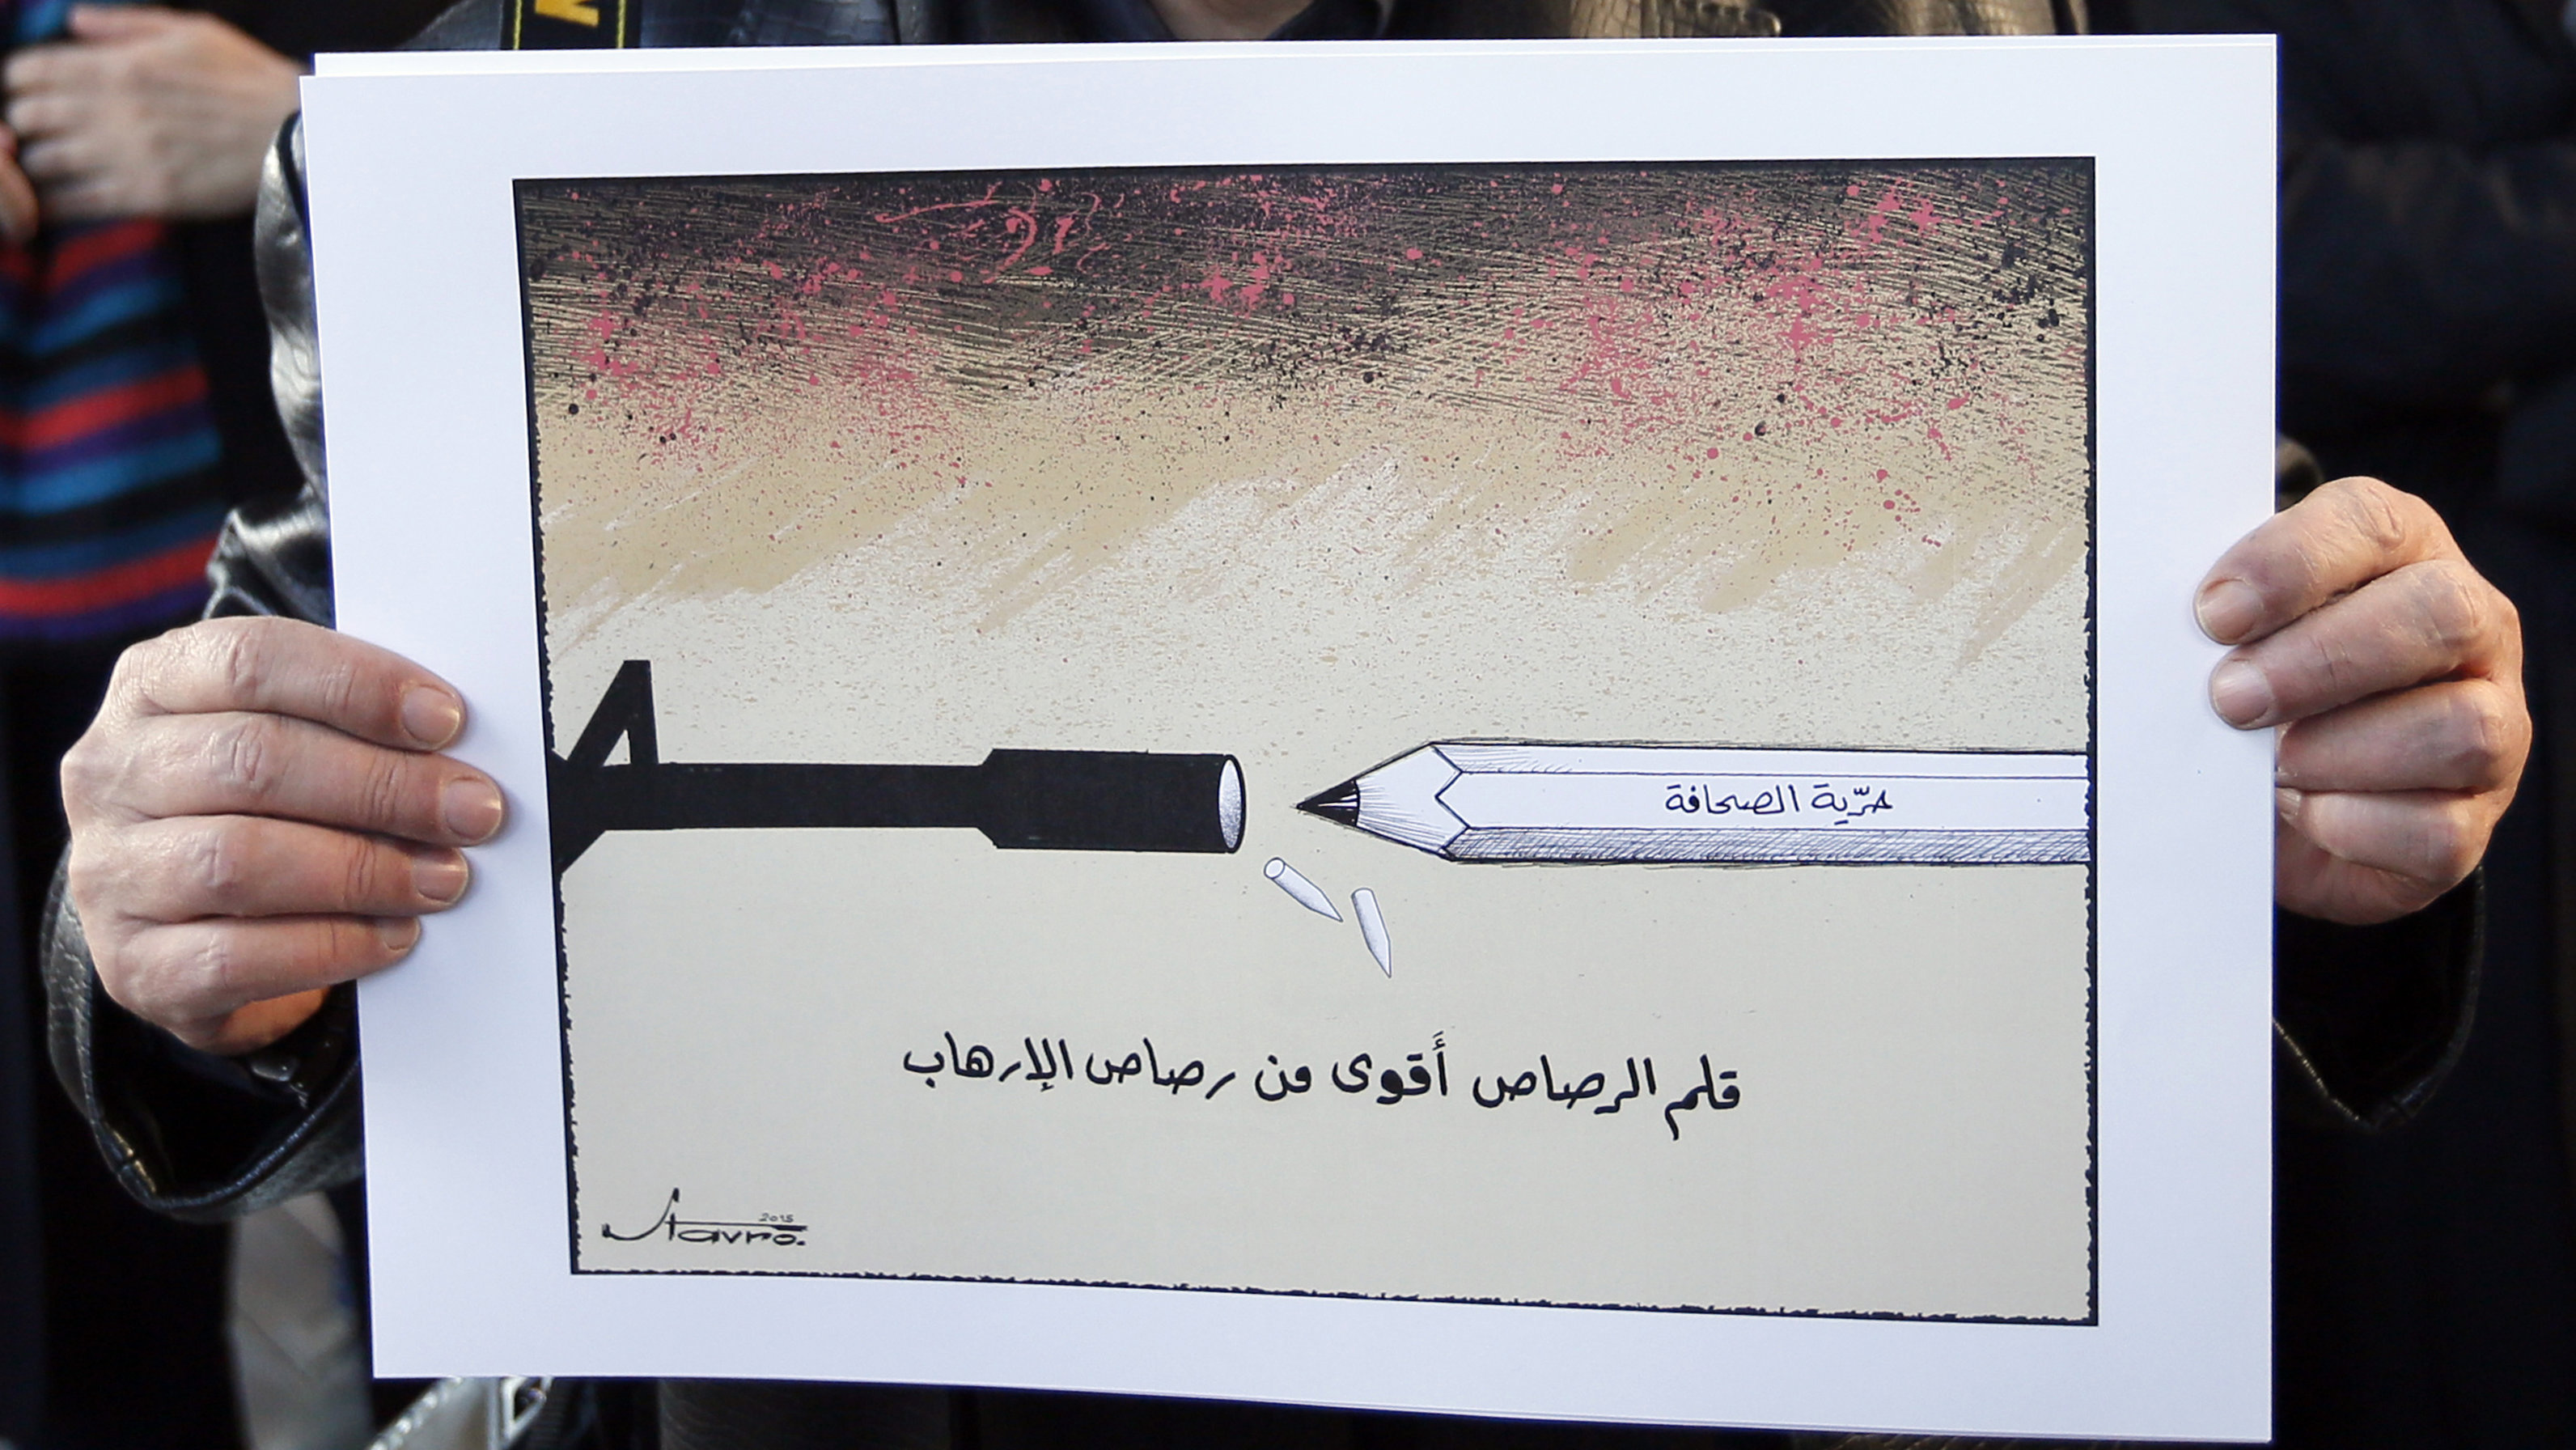 "Caricaturist Stavro Jabra holds up his cartoon during a rally held in solidarity with the victims of a shooting by gunmen at the Paris offices of the satirical weekly newspaper Charlie Hebdo earlier this week, in Beirut January 11, 2015. The words on the cartoon read, ""Pencil lead is stronger than terrorism""."